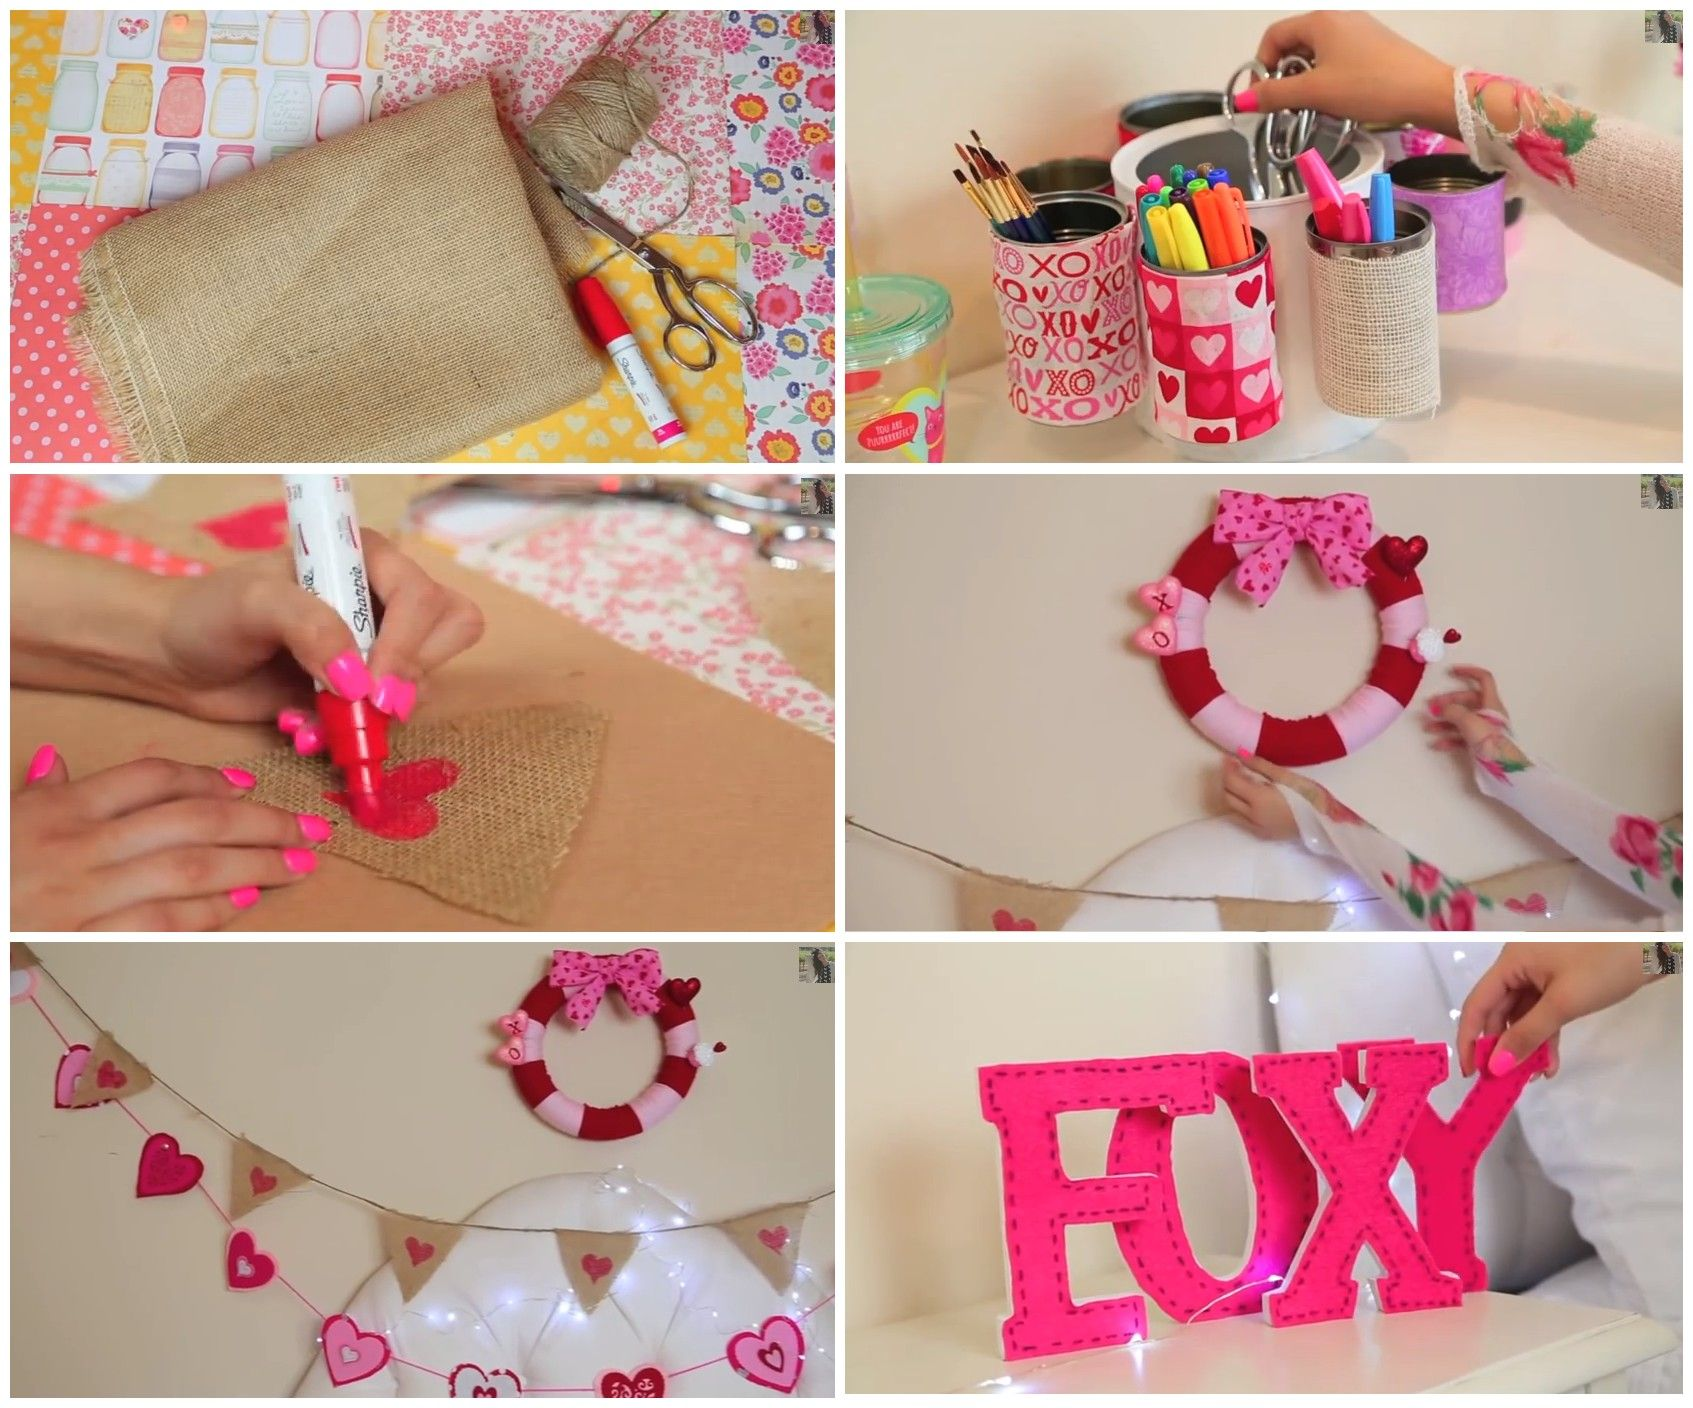 Diy Room Decorations For Valentine S Day More